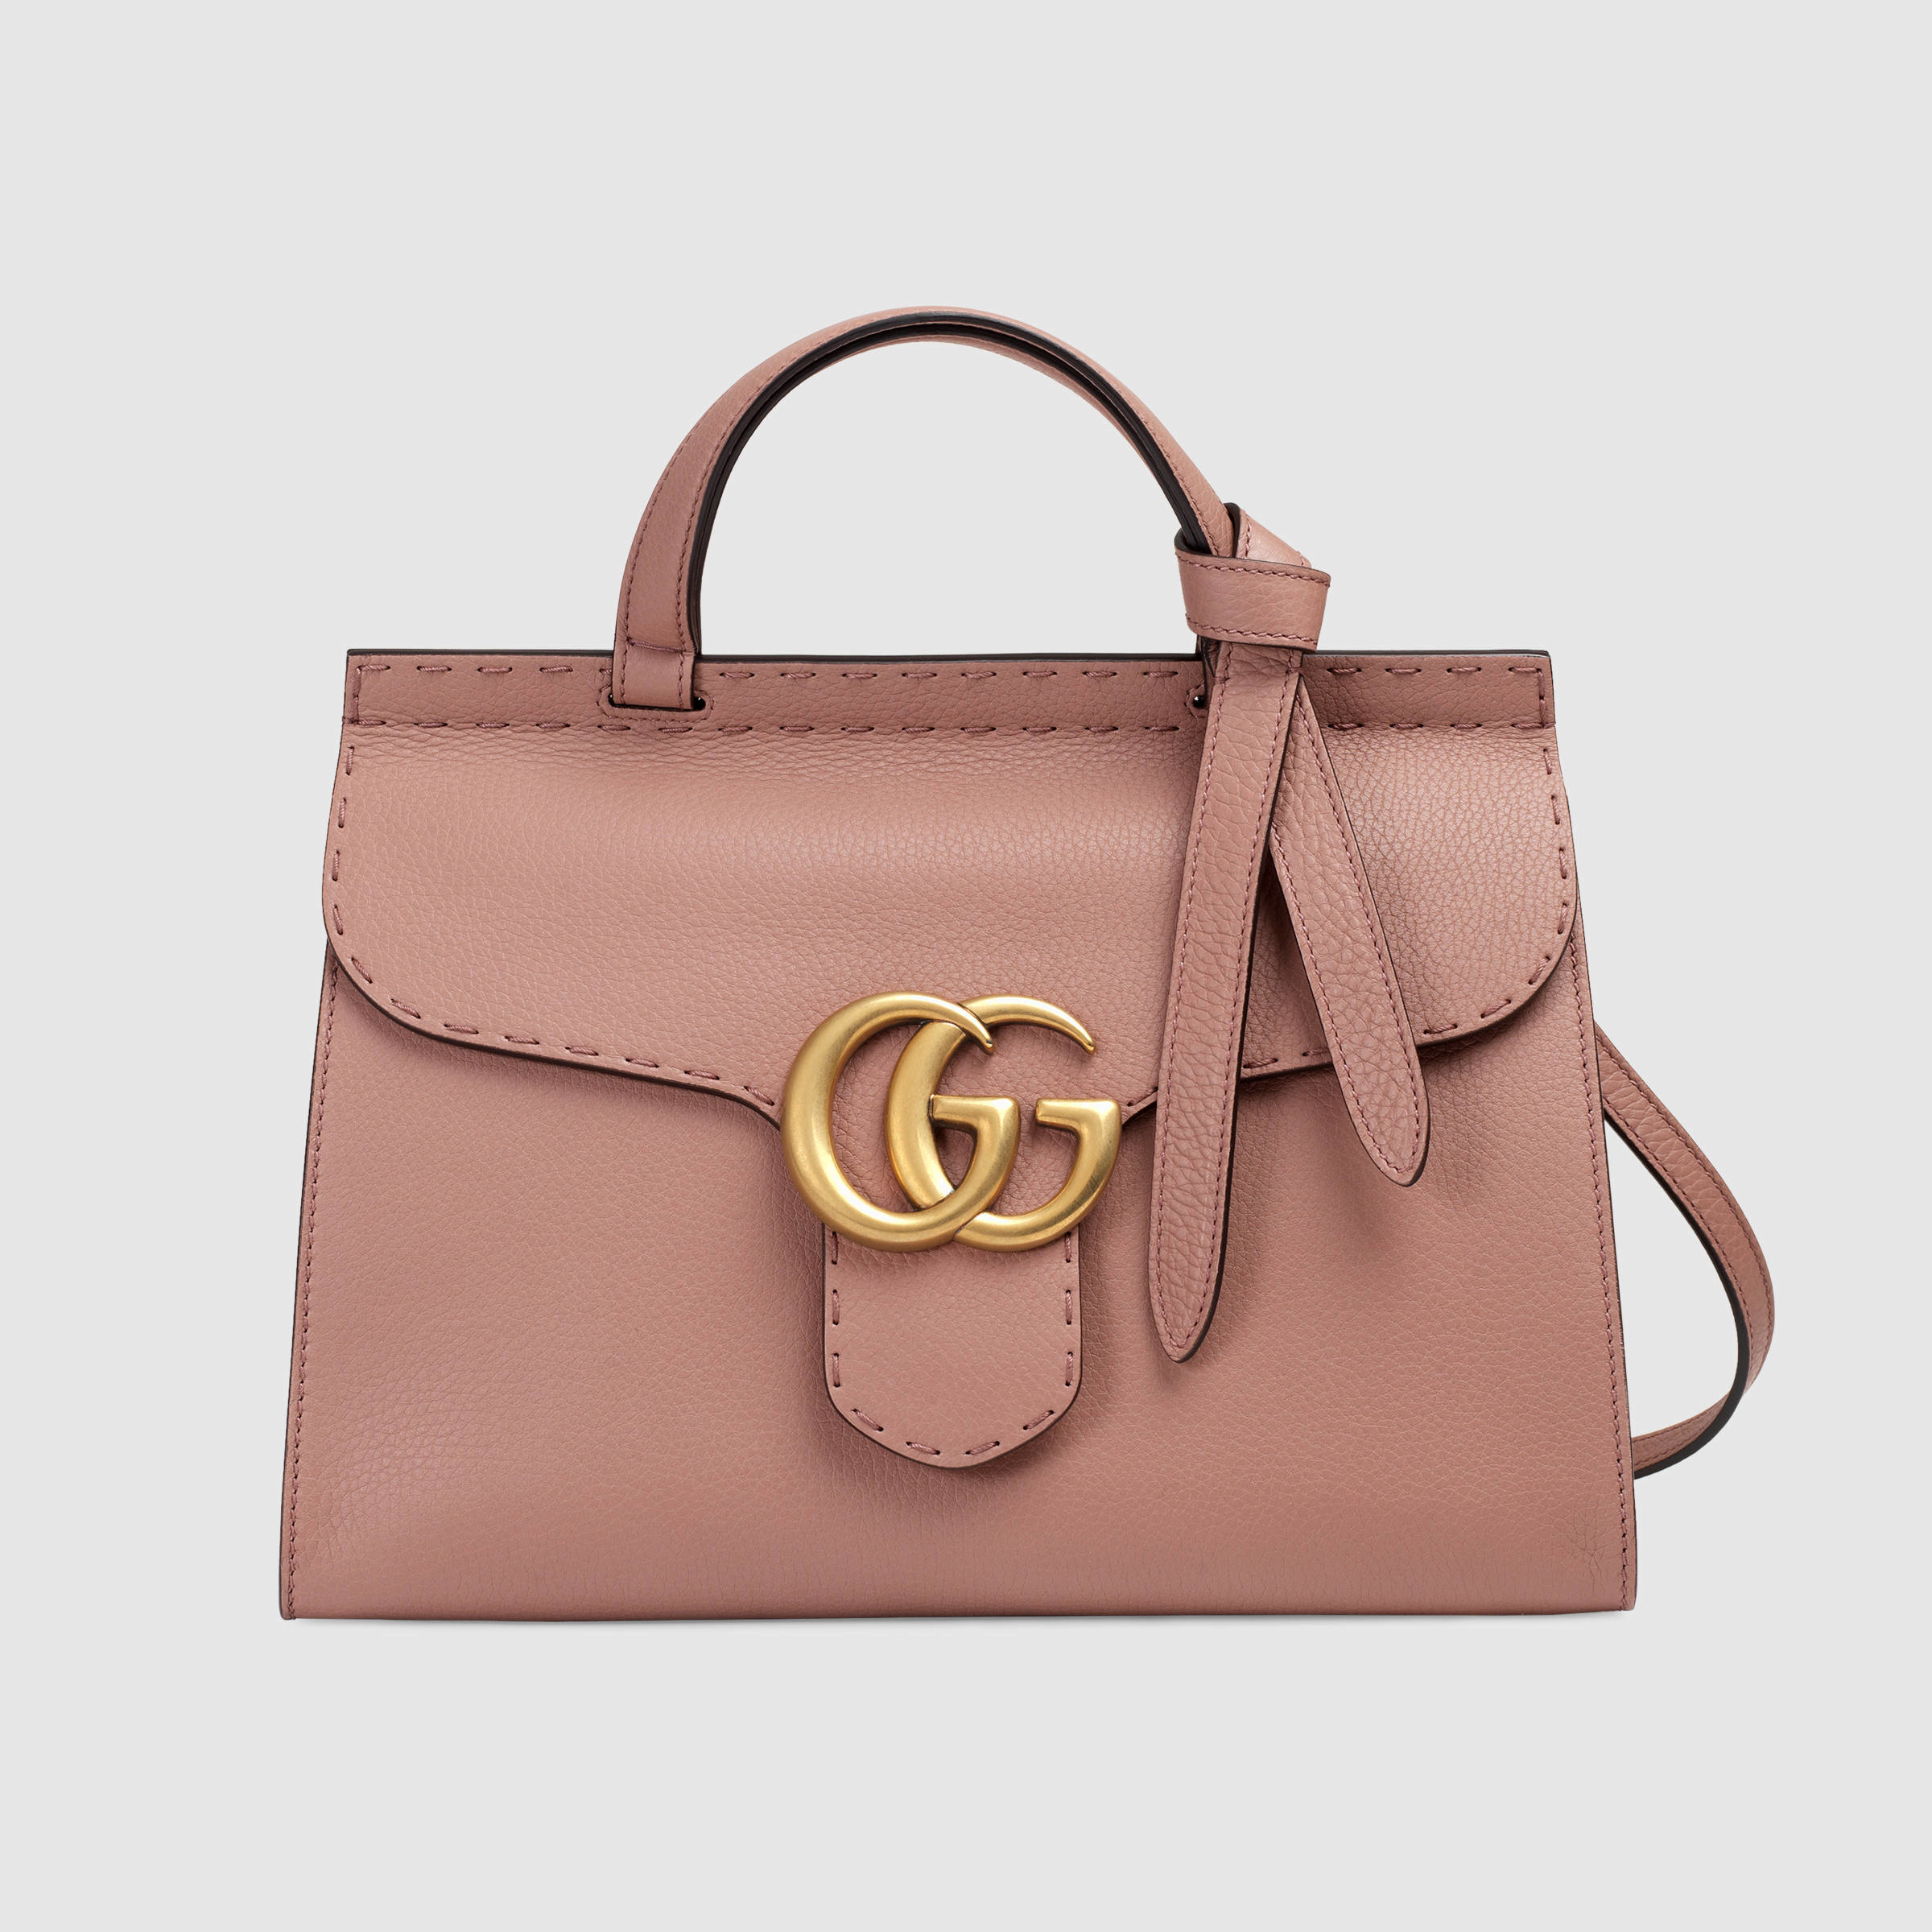 Gucci Clothing for Women